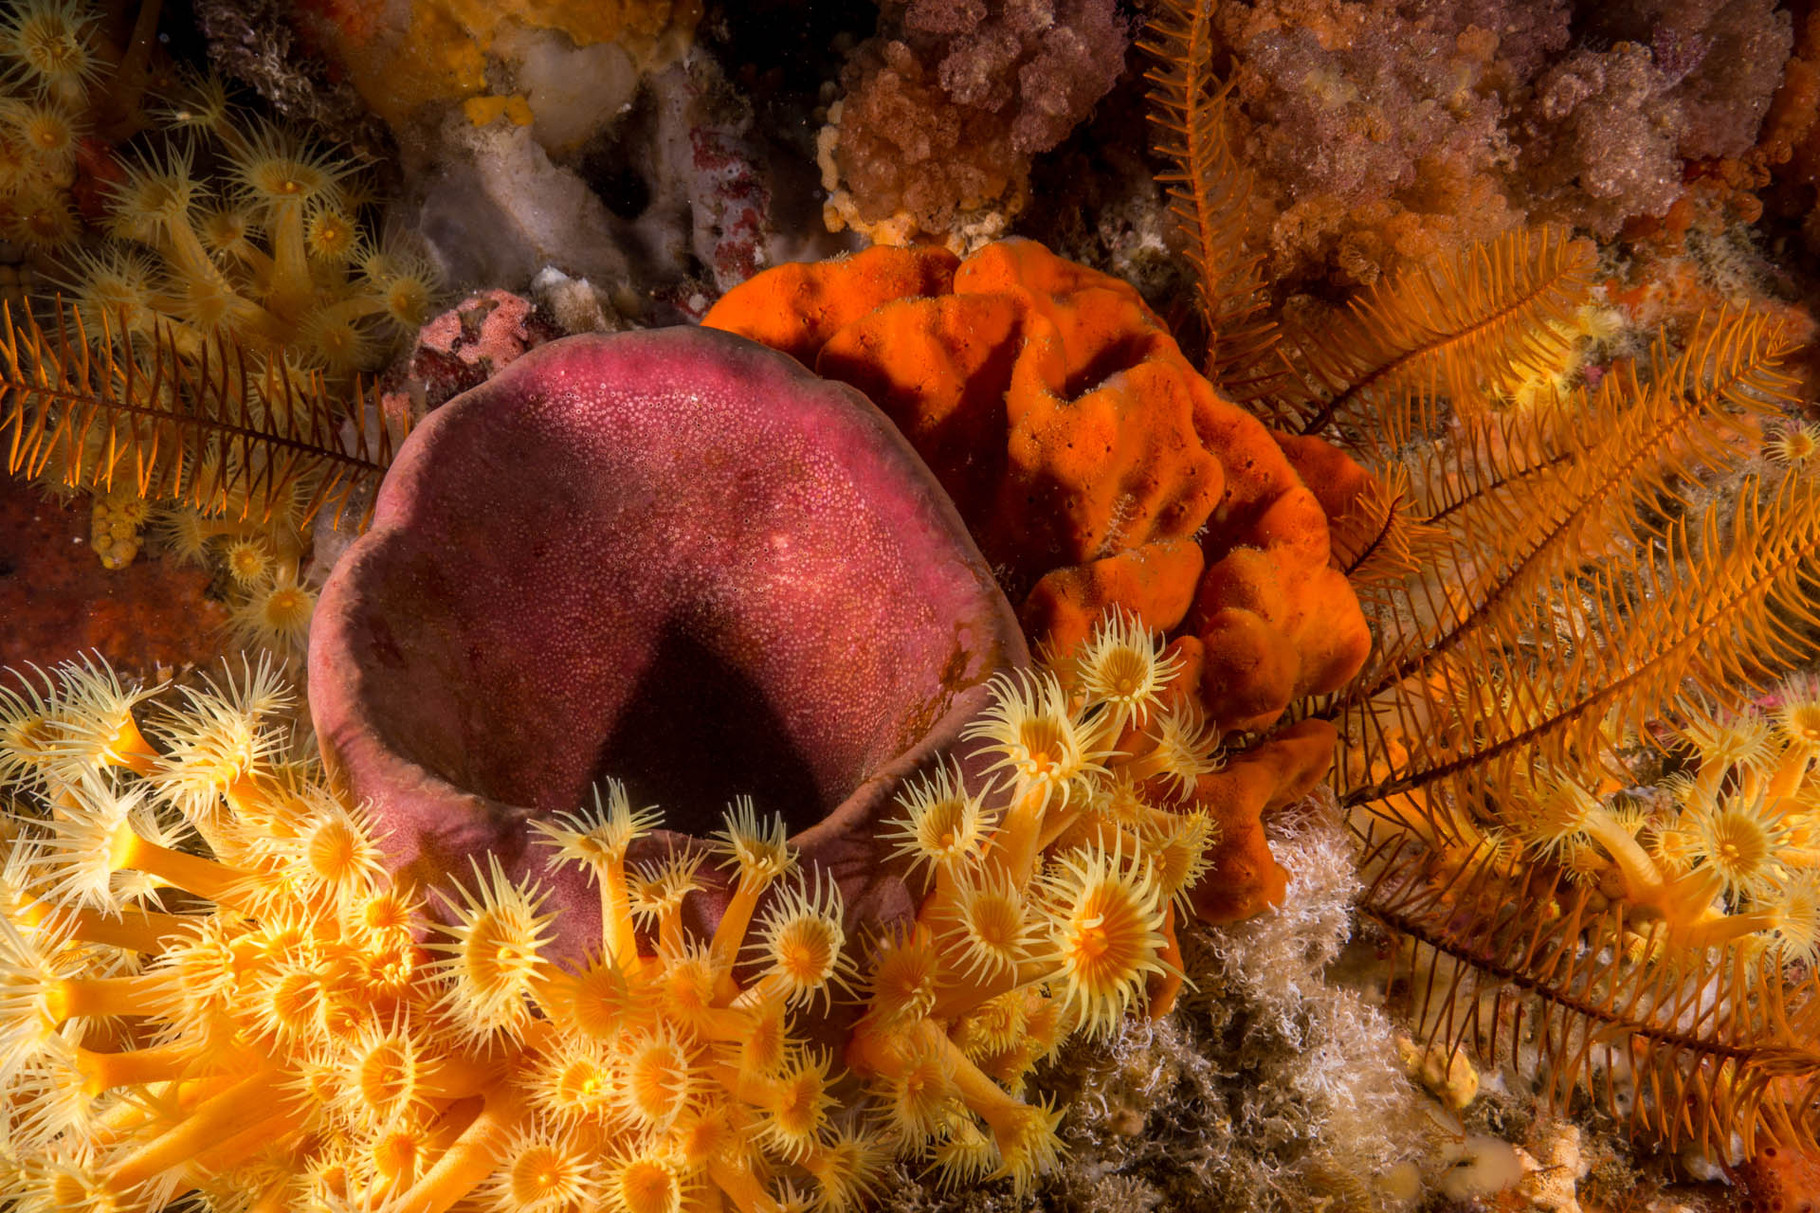 Colorful sponges and anemones